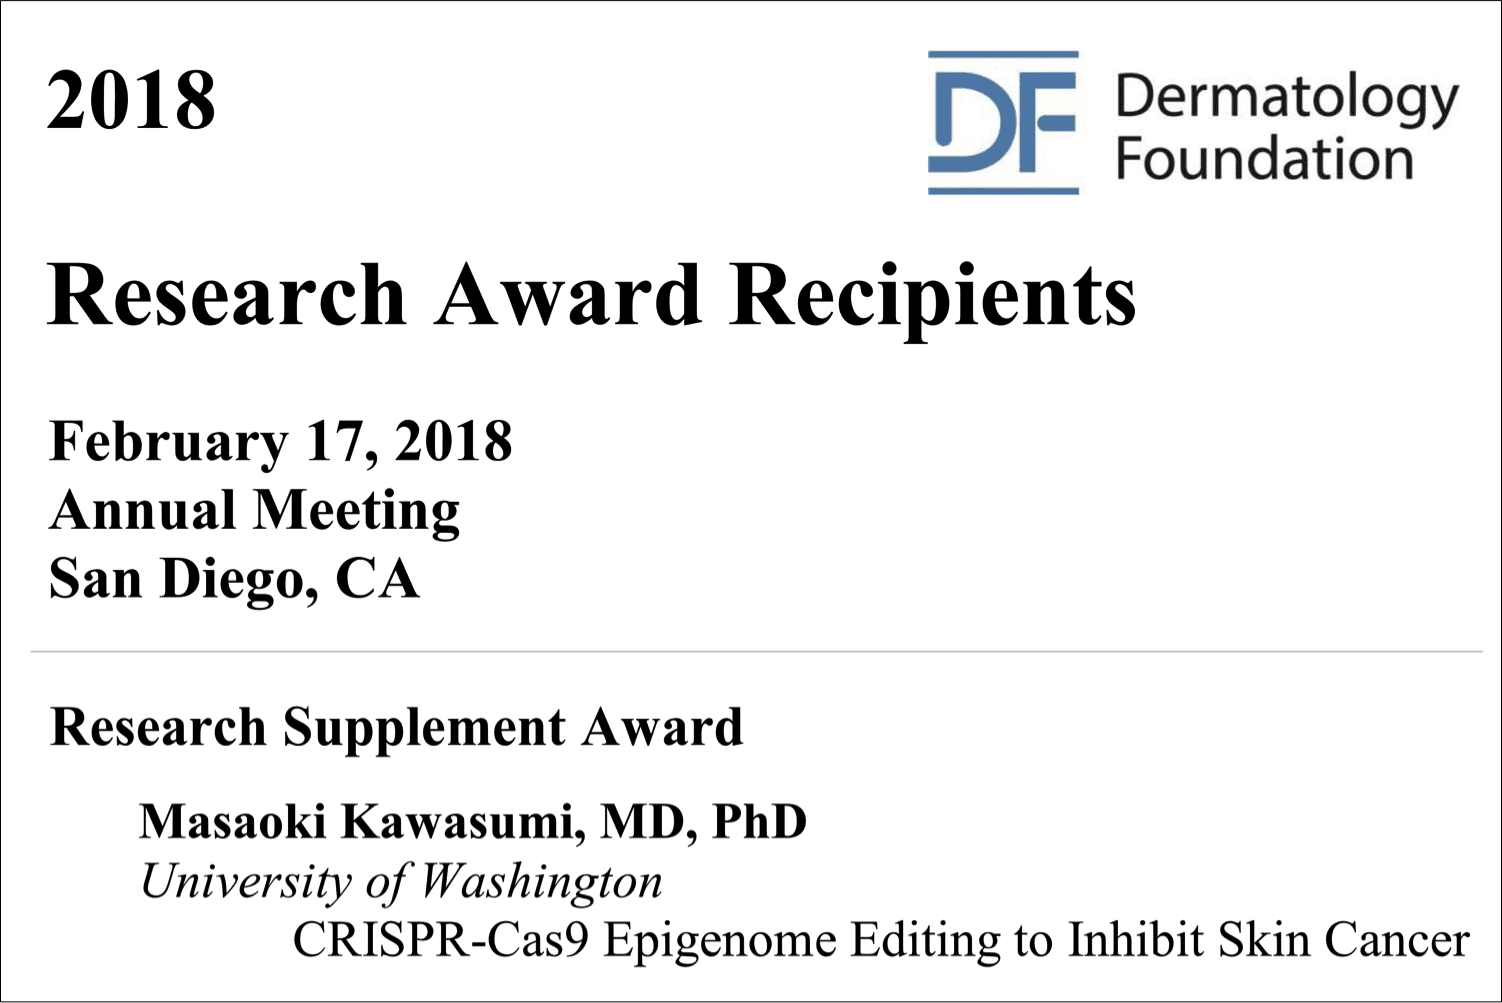 Dermatology Foundation Research Supplement Award